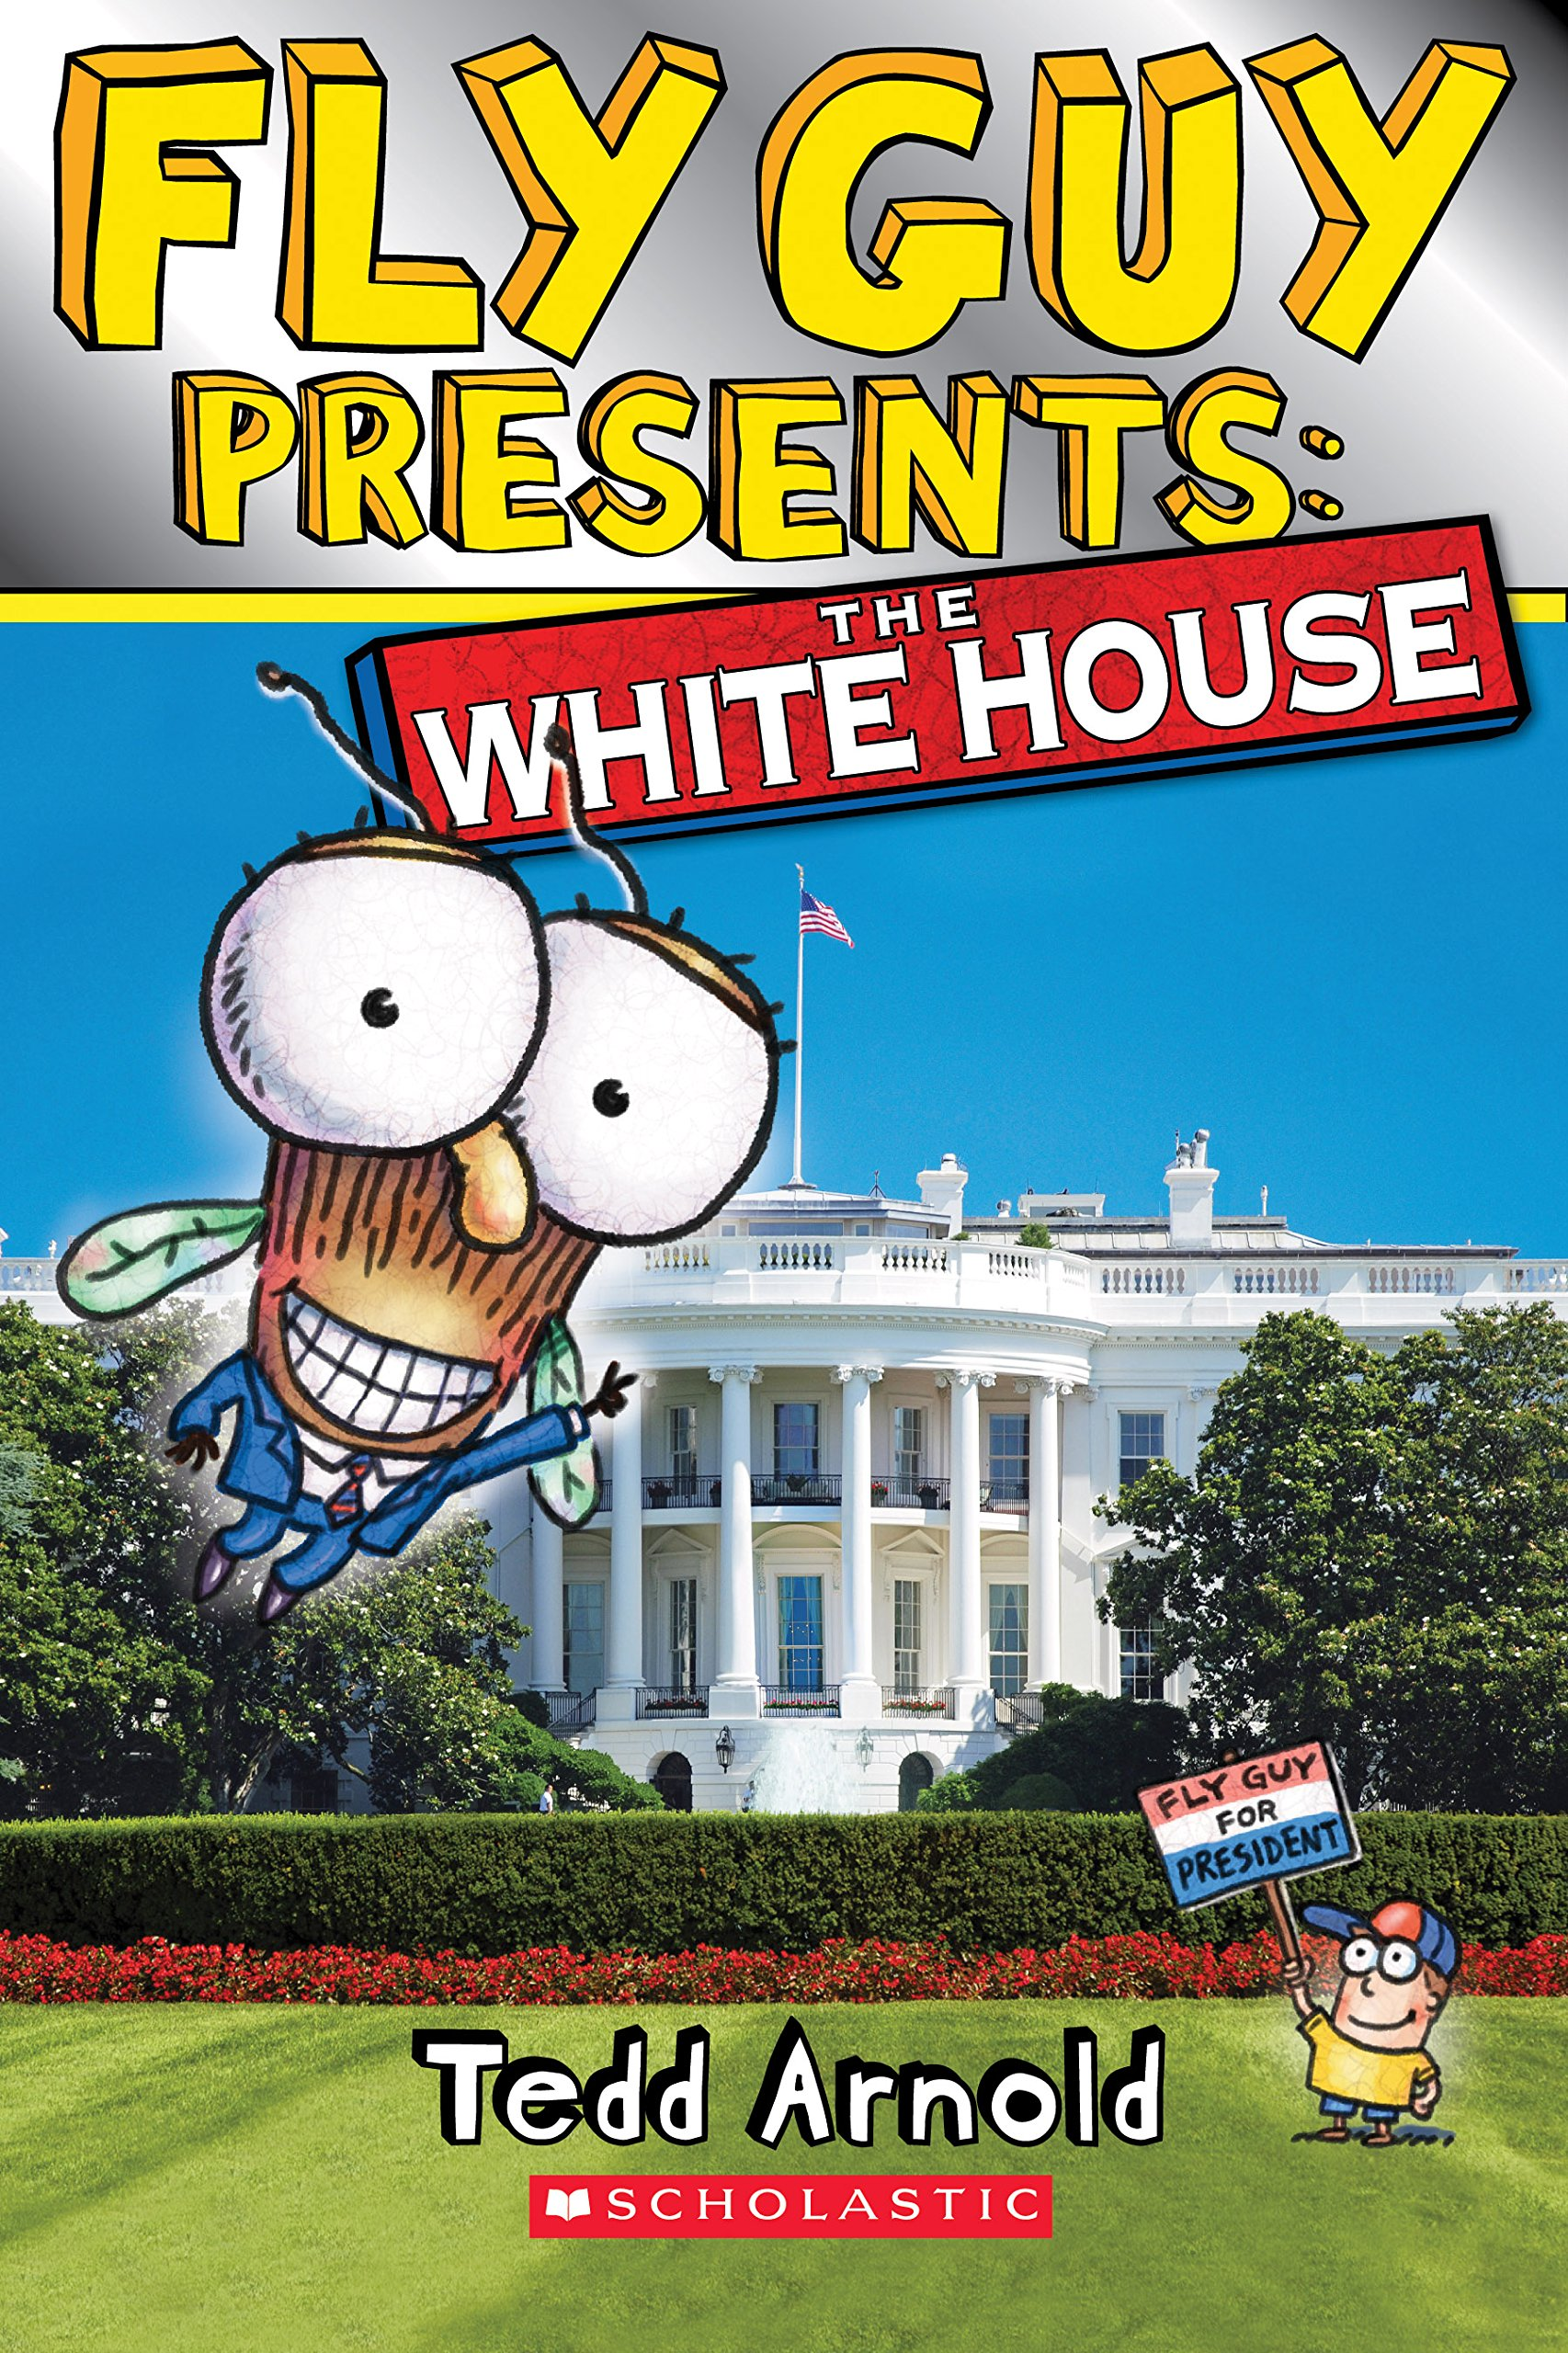 Amazon.com: Fly Guy Presents: The White House (Scholastic Reader, Level 2)  (9780545917377): Tedd Arnold: Books